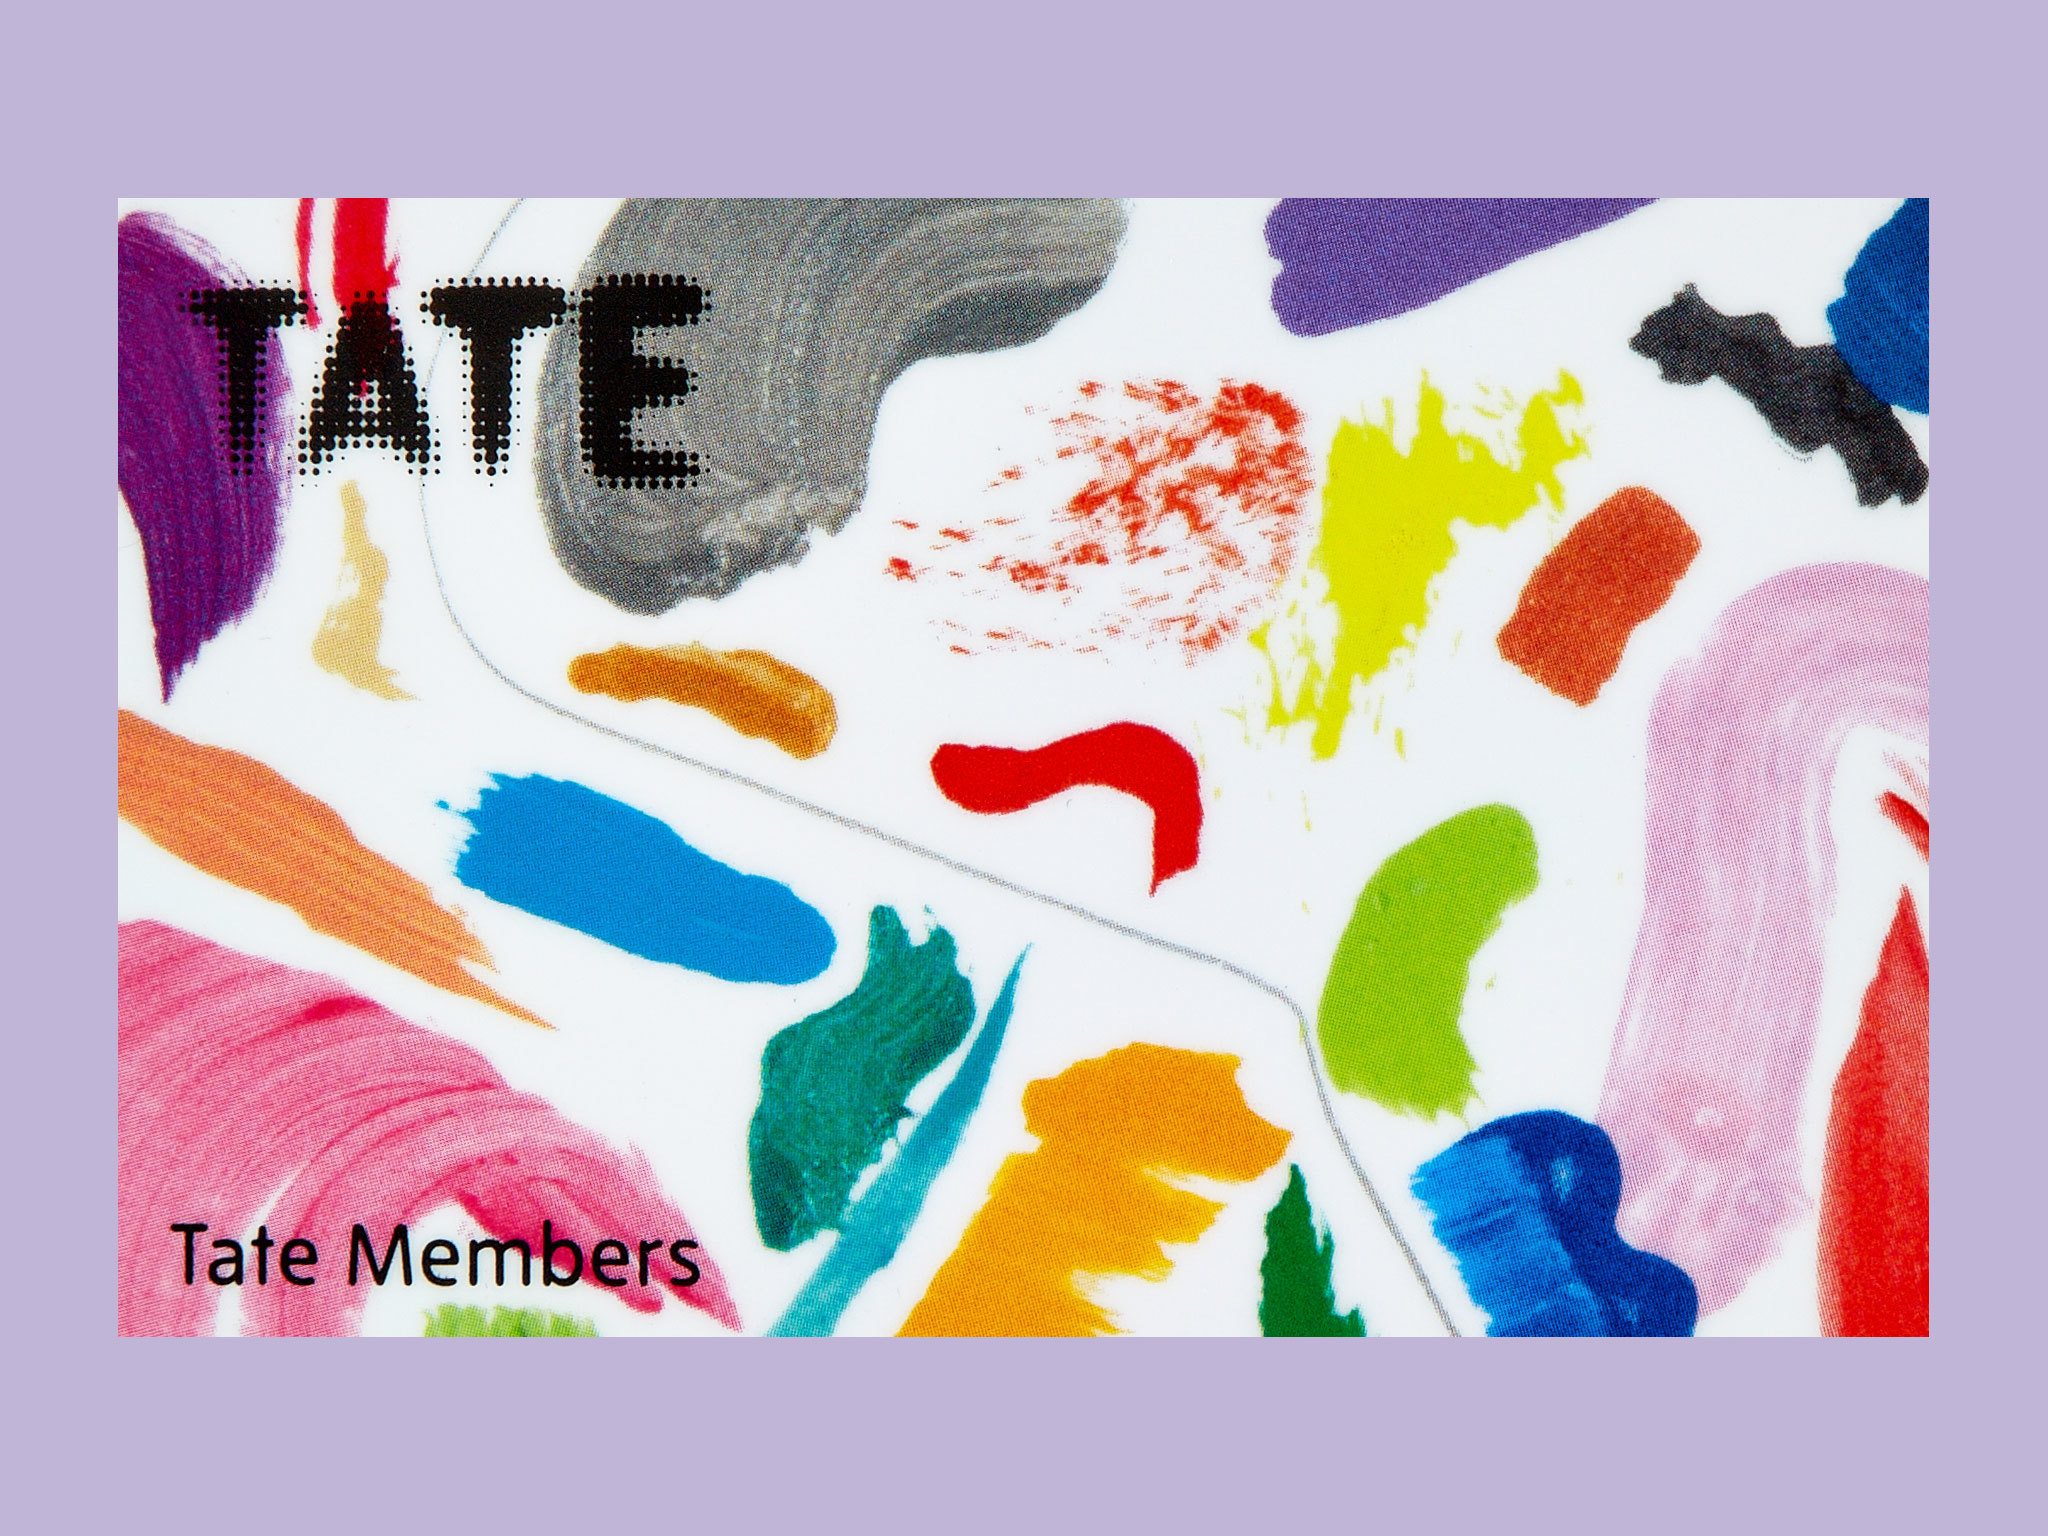 Christmas gift guide: postable presents - 365 days of art: Tate membership